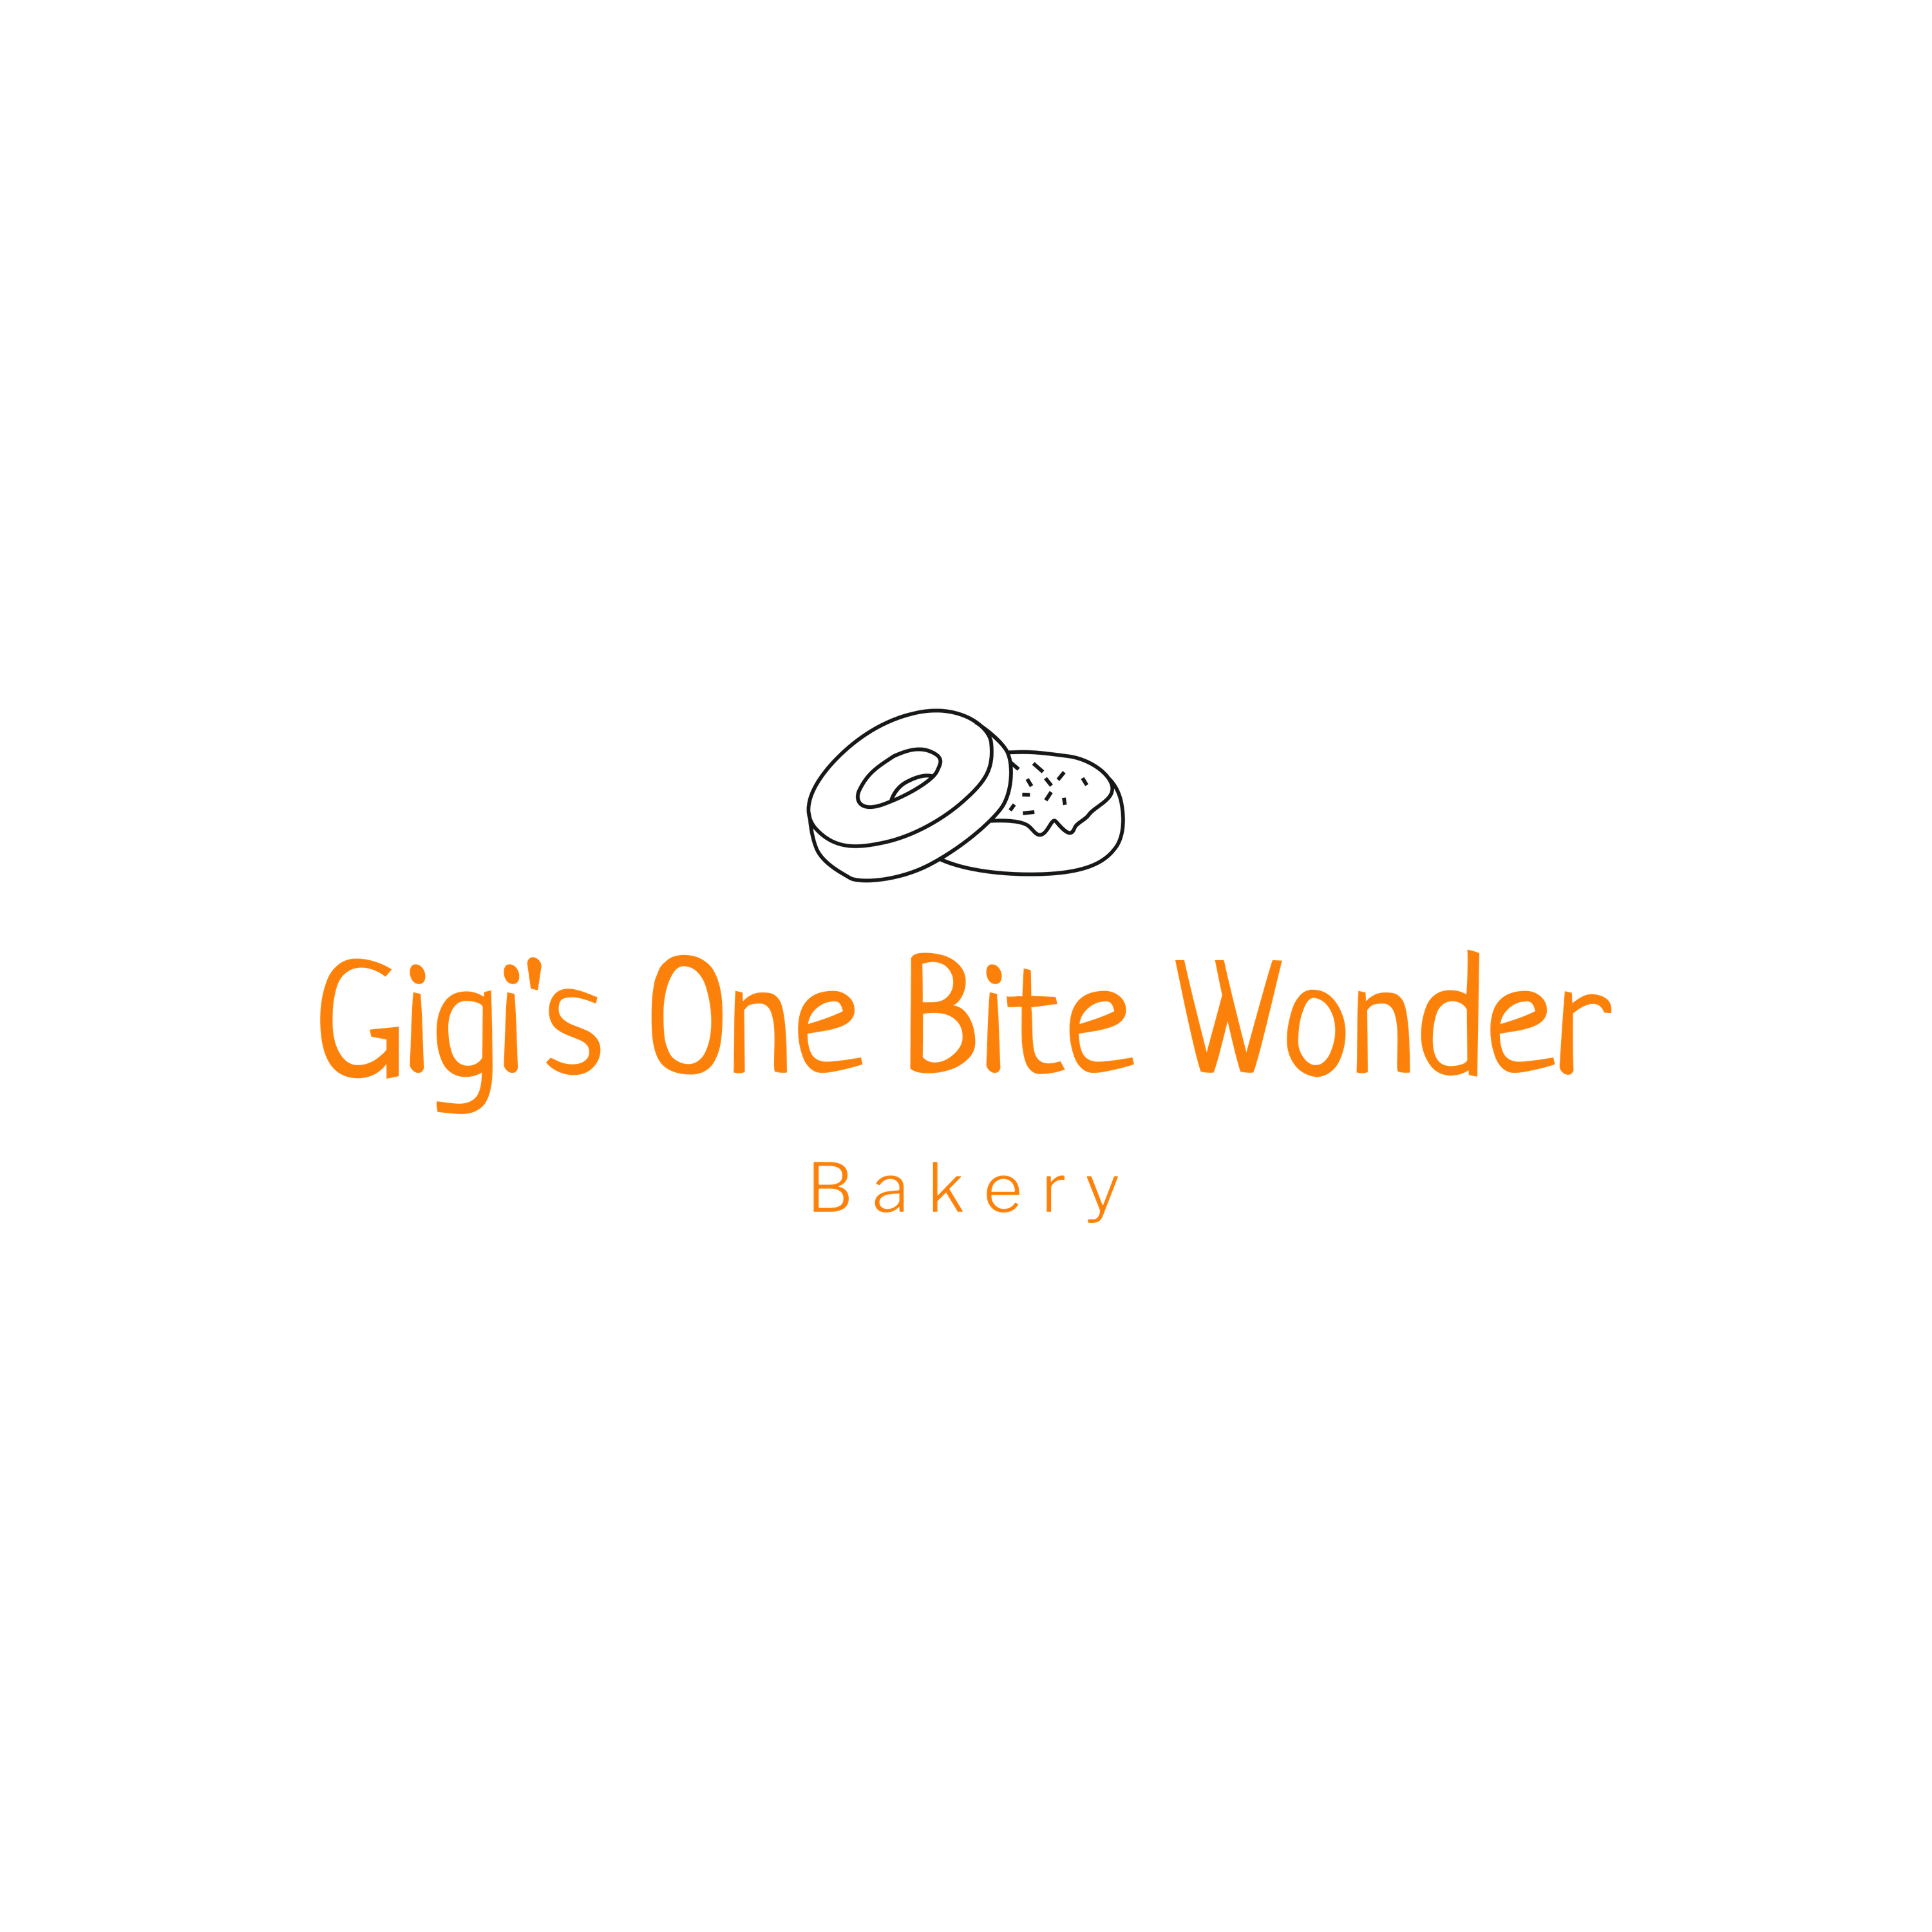 Gigi's One Bite Wonder